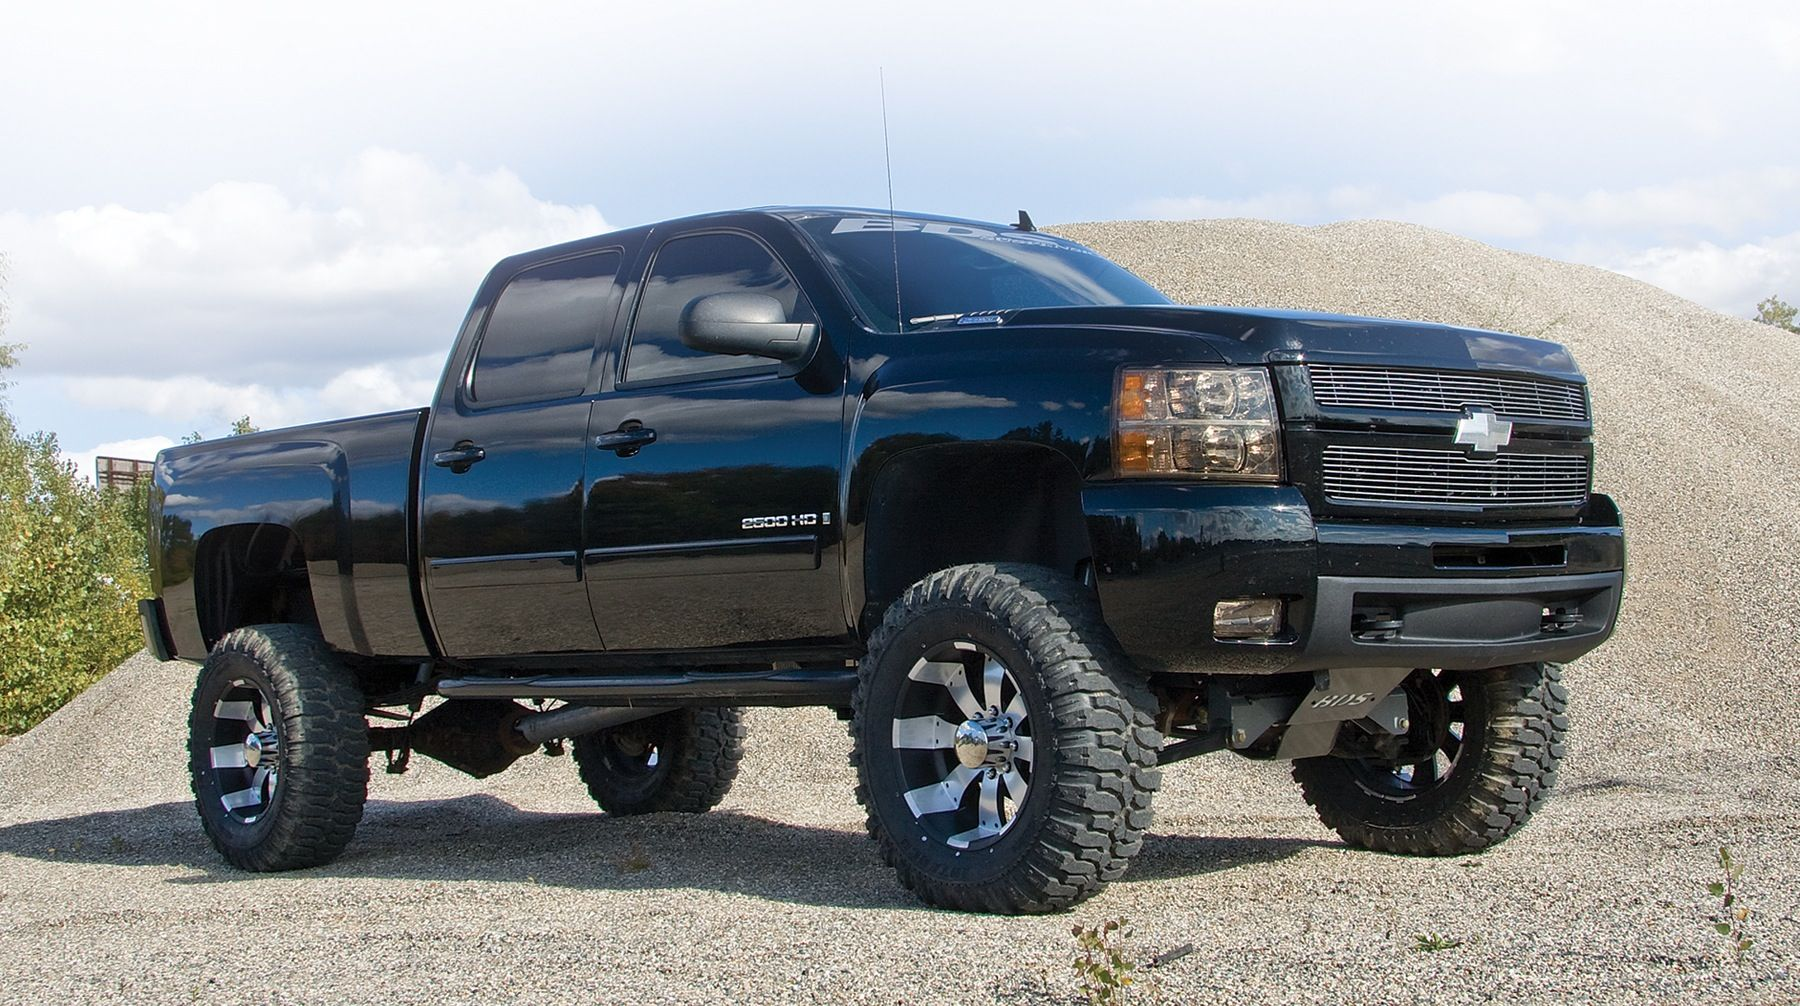 All Chevy 95 chevy 3500 diesel : Sweet silverado | Chevy | Pinterest | Biggest truck, Diesel trucks ...